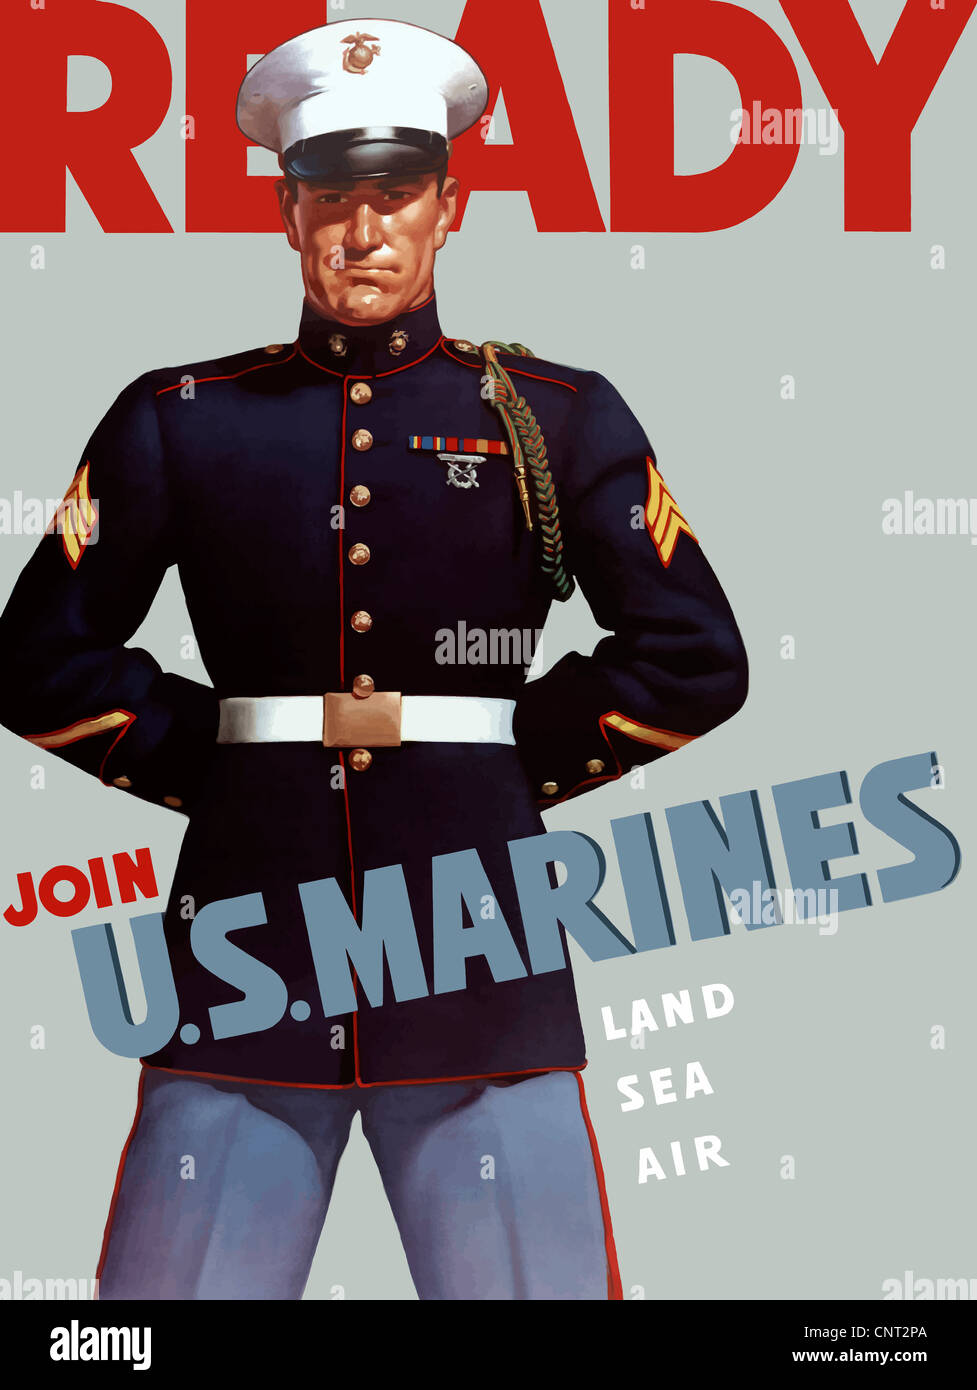 this marine corps recruiting poster from world war ii features a